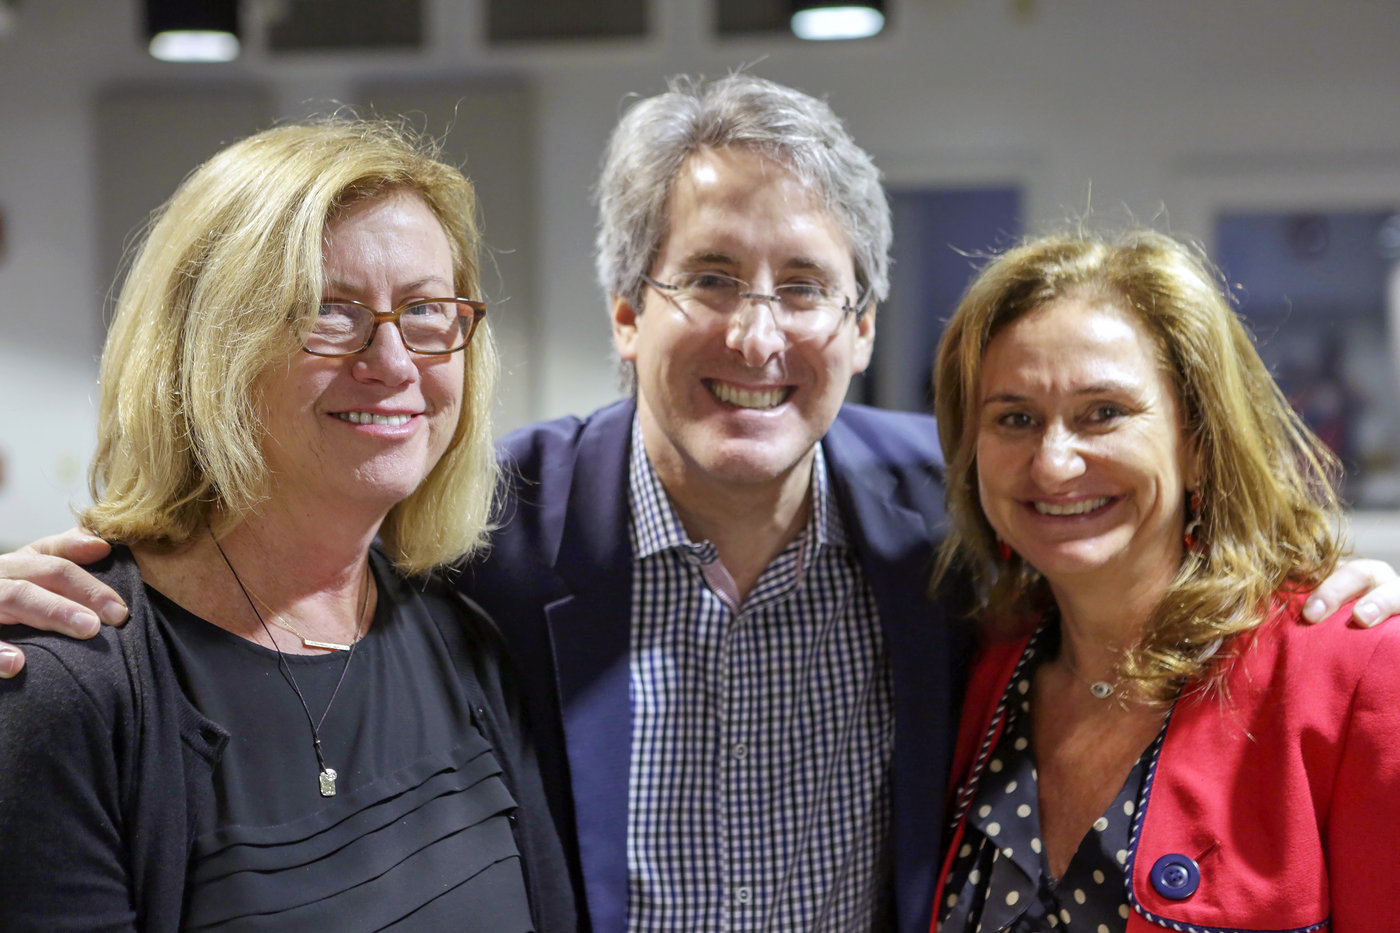 Patty McGoldrick, NP, of the Developmental Disability Center, Mount Sinai-Beth Israel Medical Center; Dr. Steven Wolf of Mount Sinai Medical School; and Michele Safra, President of Fundación Querer - U.S.